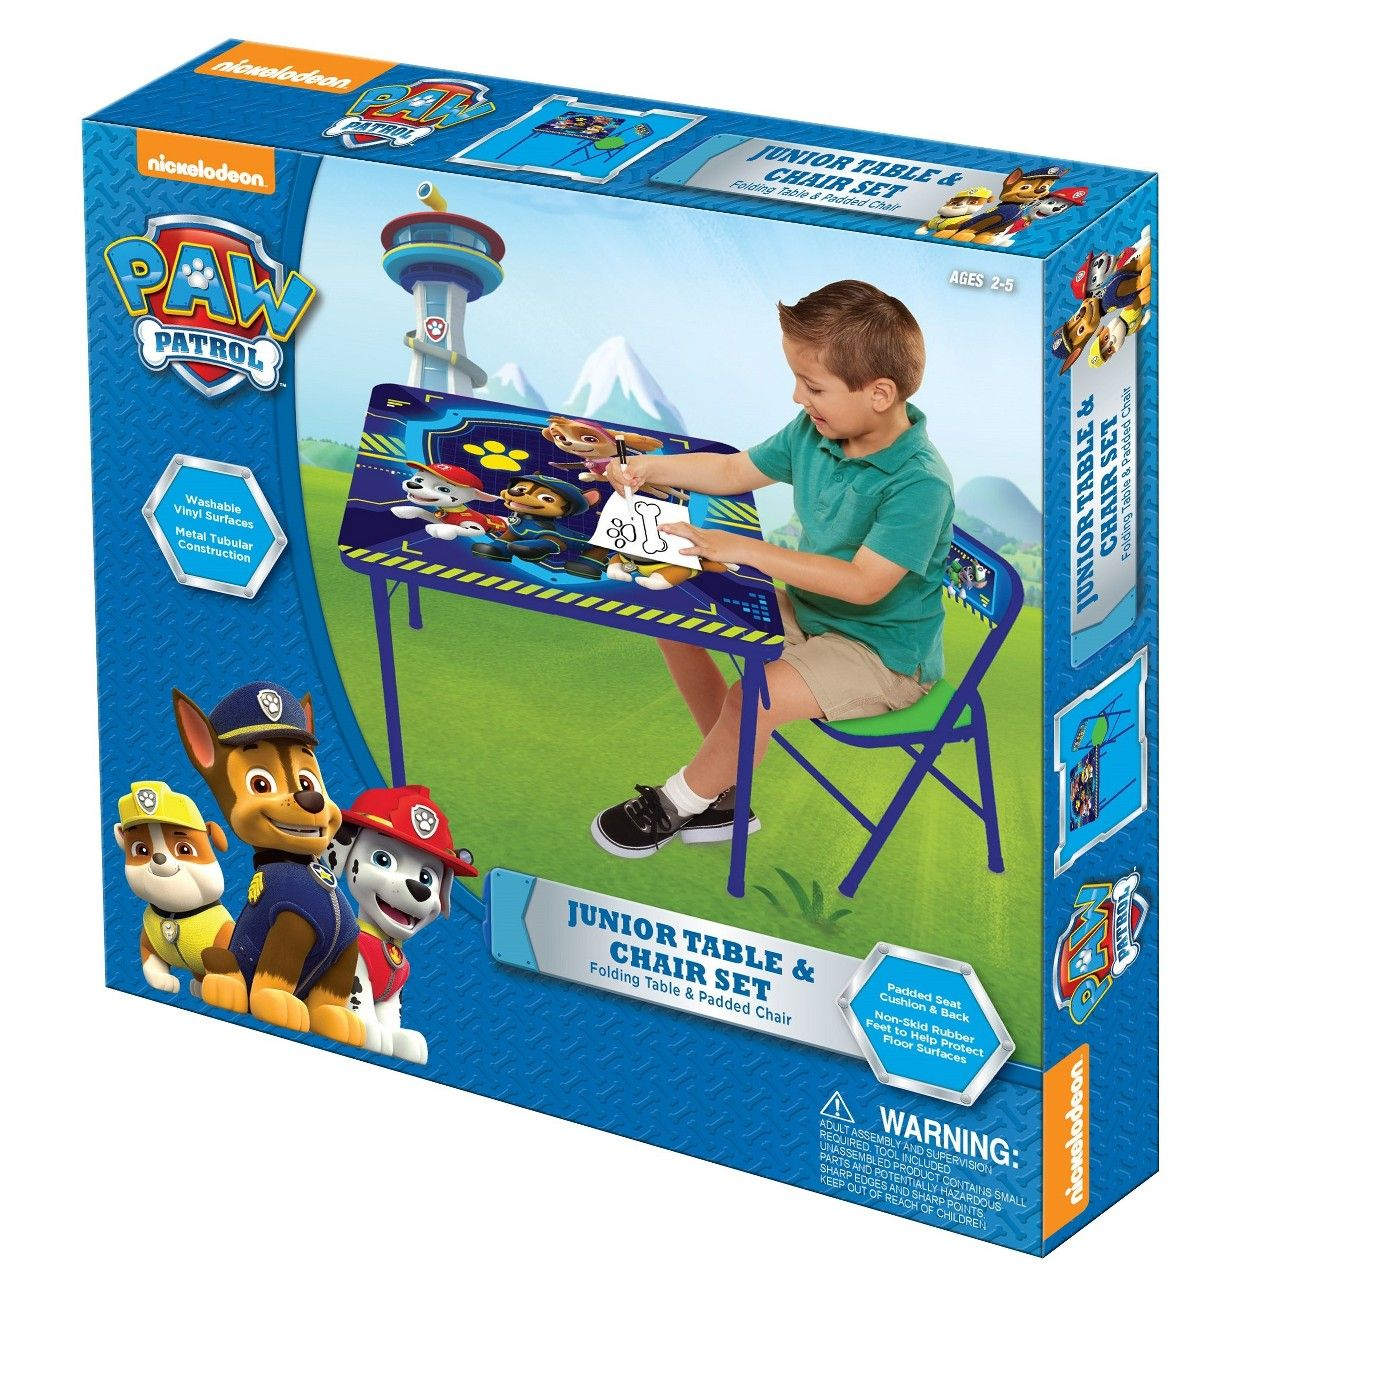 Tremendous Paw Patrol Jr Activity Table Set Jr Patrol Paw Paw Creativecarmelina Interior Chair Design Creativecarmelinacom